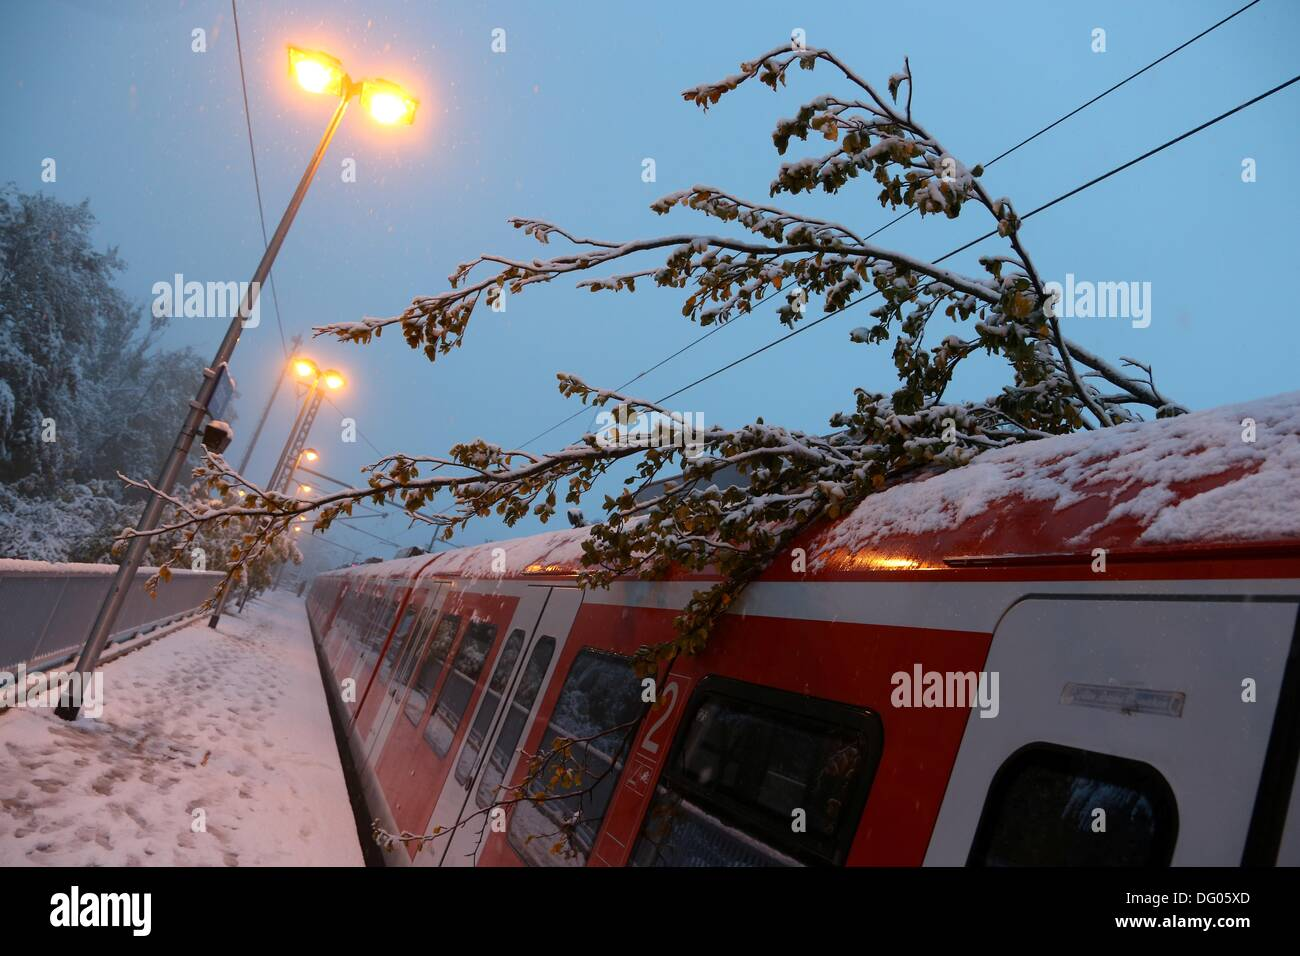 Icking, Germany. 11th Oct, 2013. Parts of a tree lie on top of an S-Bahn, which was halted in the station by heady snowfall in Icking, Germany, 11 October 2013. Heavy snow during the night in southern Bavaria caused many headaches with falling branches, train cancellations and school closures. Photo: STEPHAN JANSEN/dpa/Alamy Live News - Stock Image